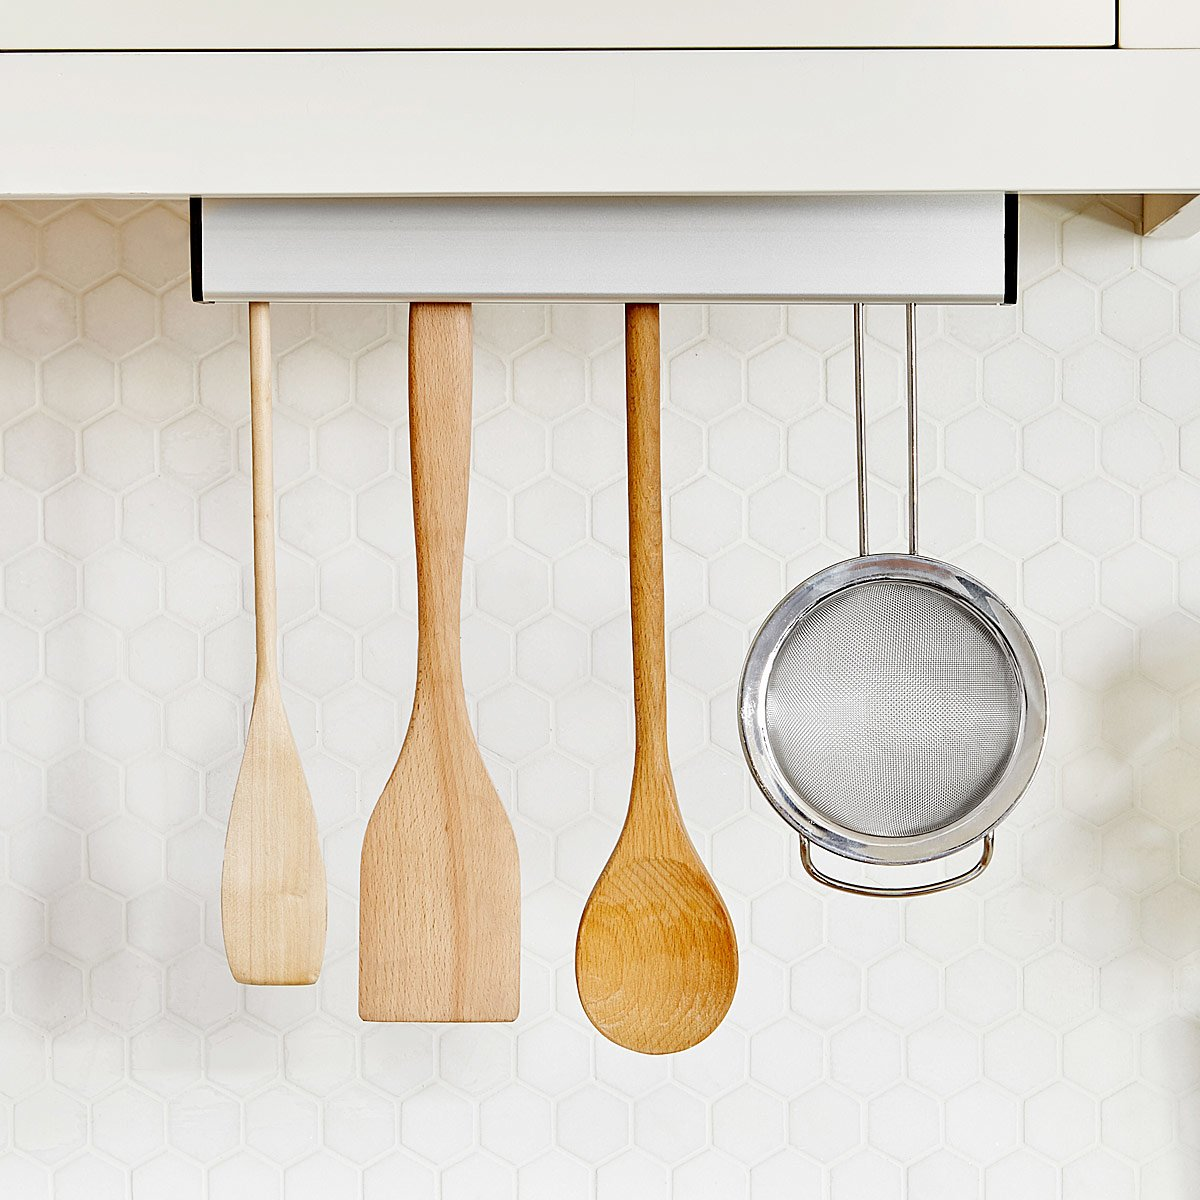 Floating Utensil Holder | Kitchen space savers, Spoon holder